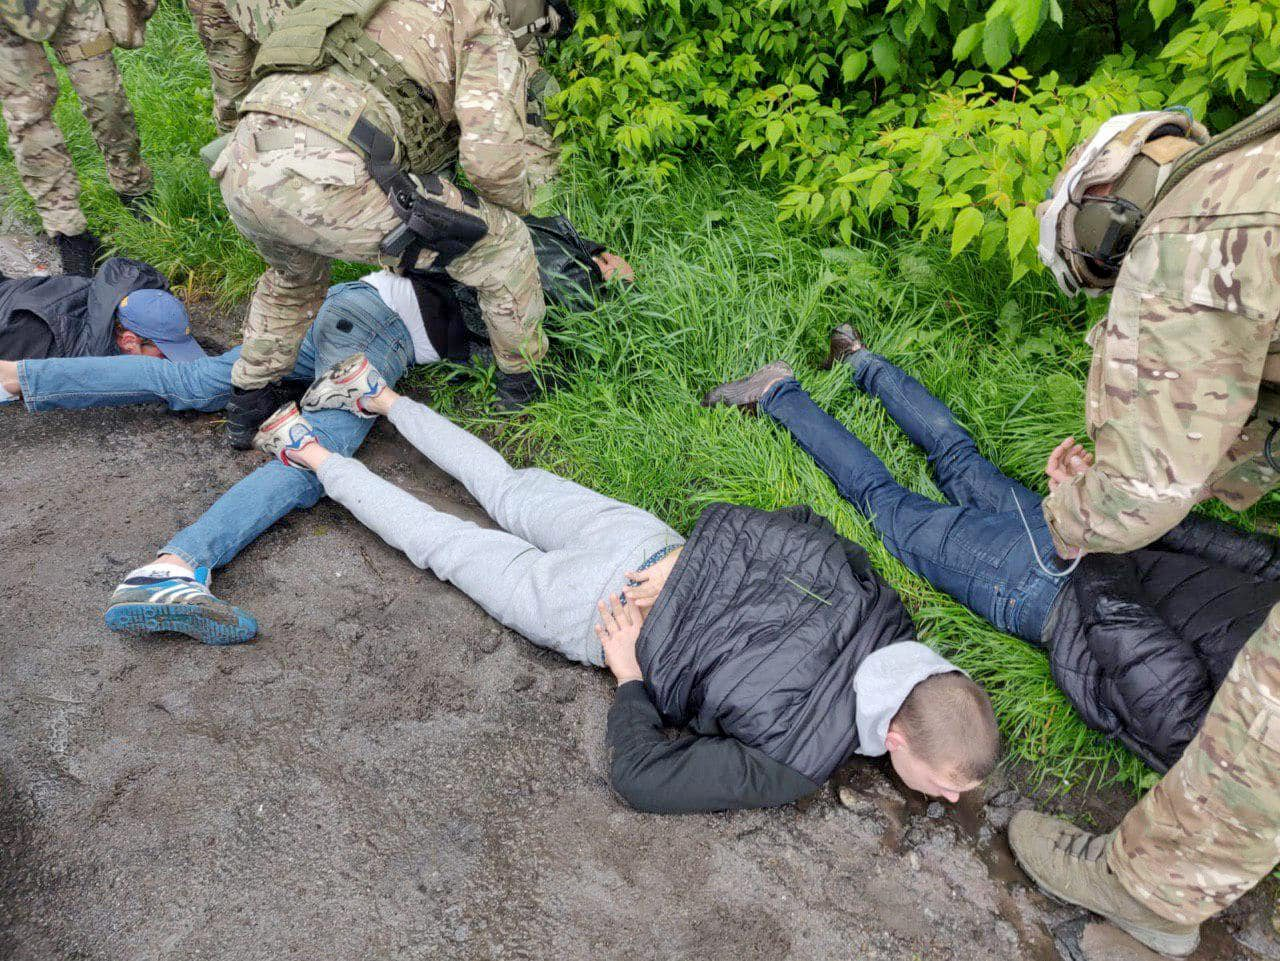 This handout picture taken and released by Ukrainian Interior Ministry press-service on May 29, 2020, shows people detained by the police in small town of Brovary, near Kiev. - Three people have been wounded and eleven arrested after a mass shootout between criminal gangs in a small town near Kiev, authorities said on May 29, 2020. Dozens of people staged a shootout early on May 29, in the streets of Brovary, a small town ten kilometres (eight miles) east of Kiev, police said. The cause of the clash was